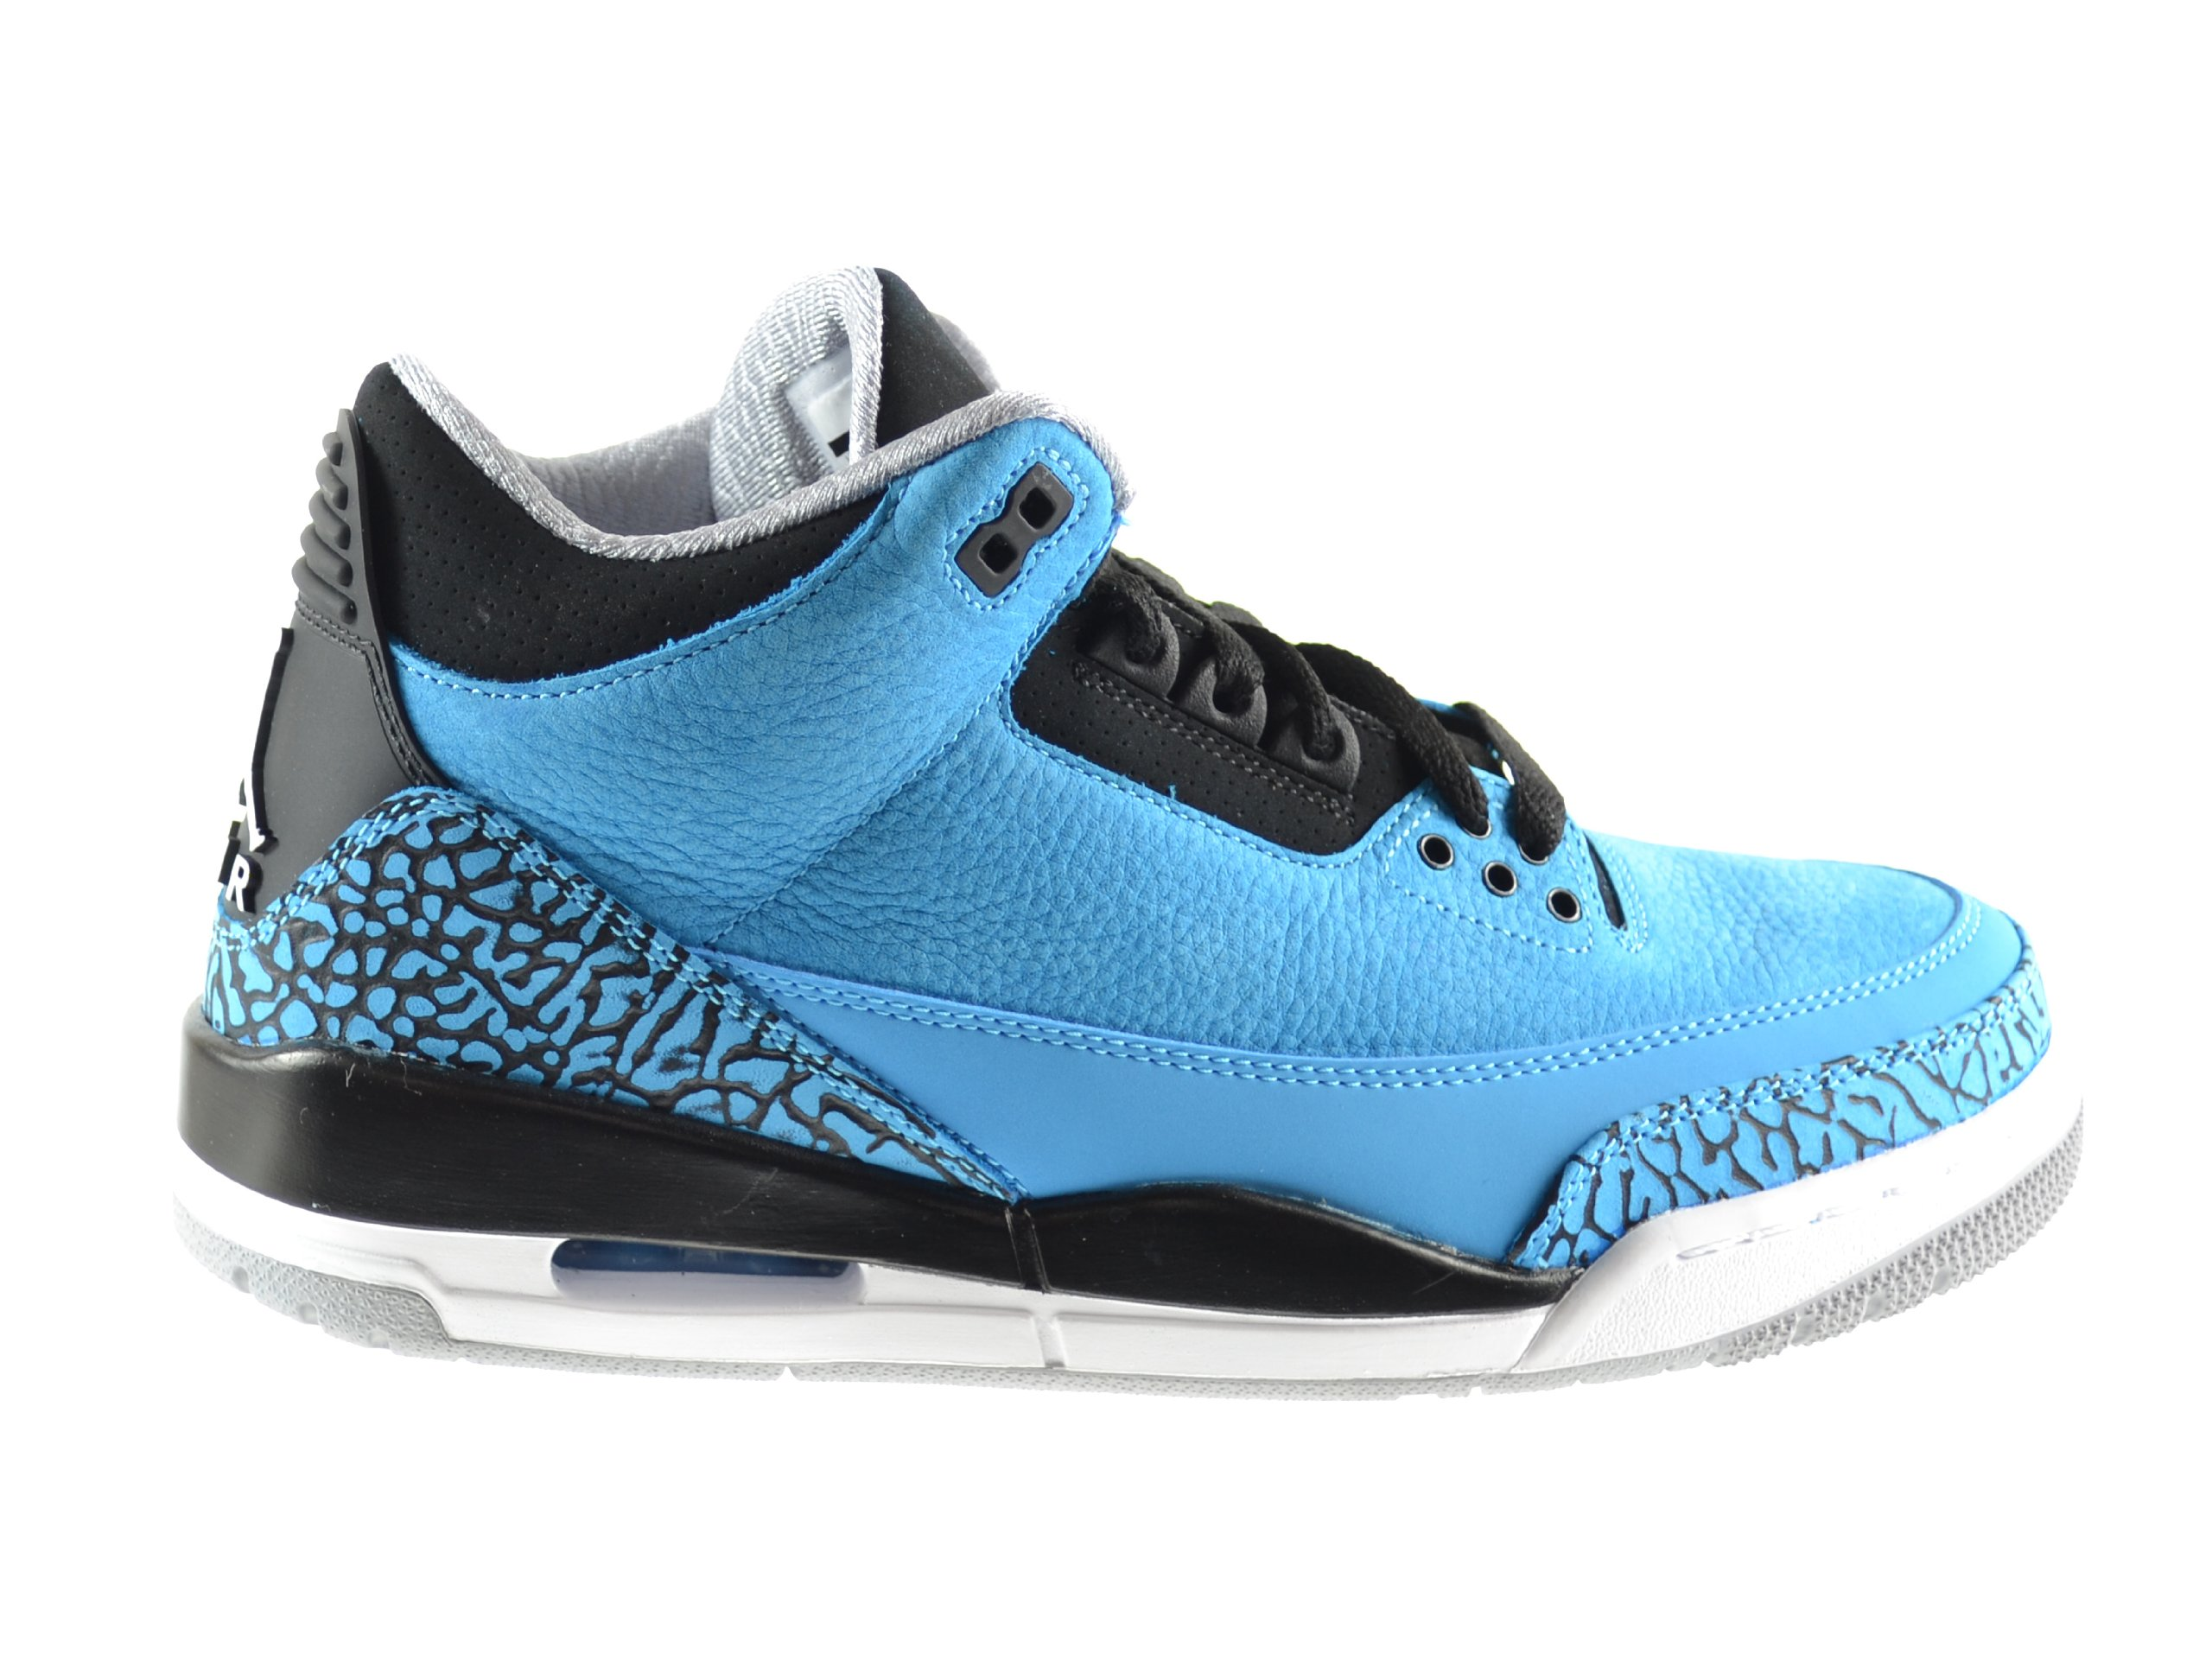 Air Jordan 3 Retro Men's Basketball Shoes Dark Powder Blue/White-Black-Wolf Grey